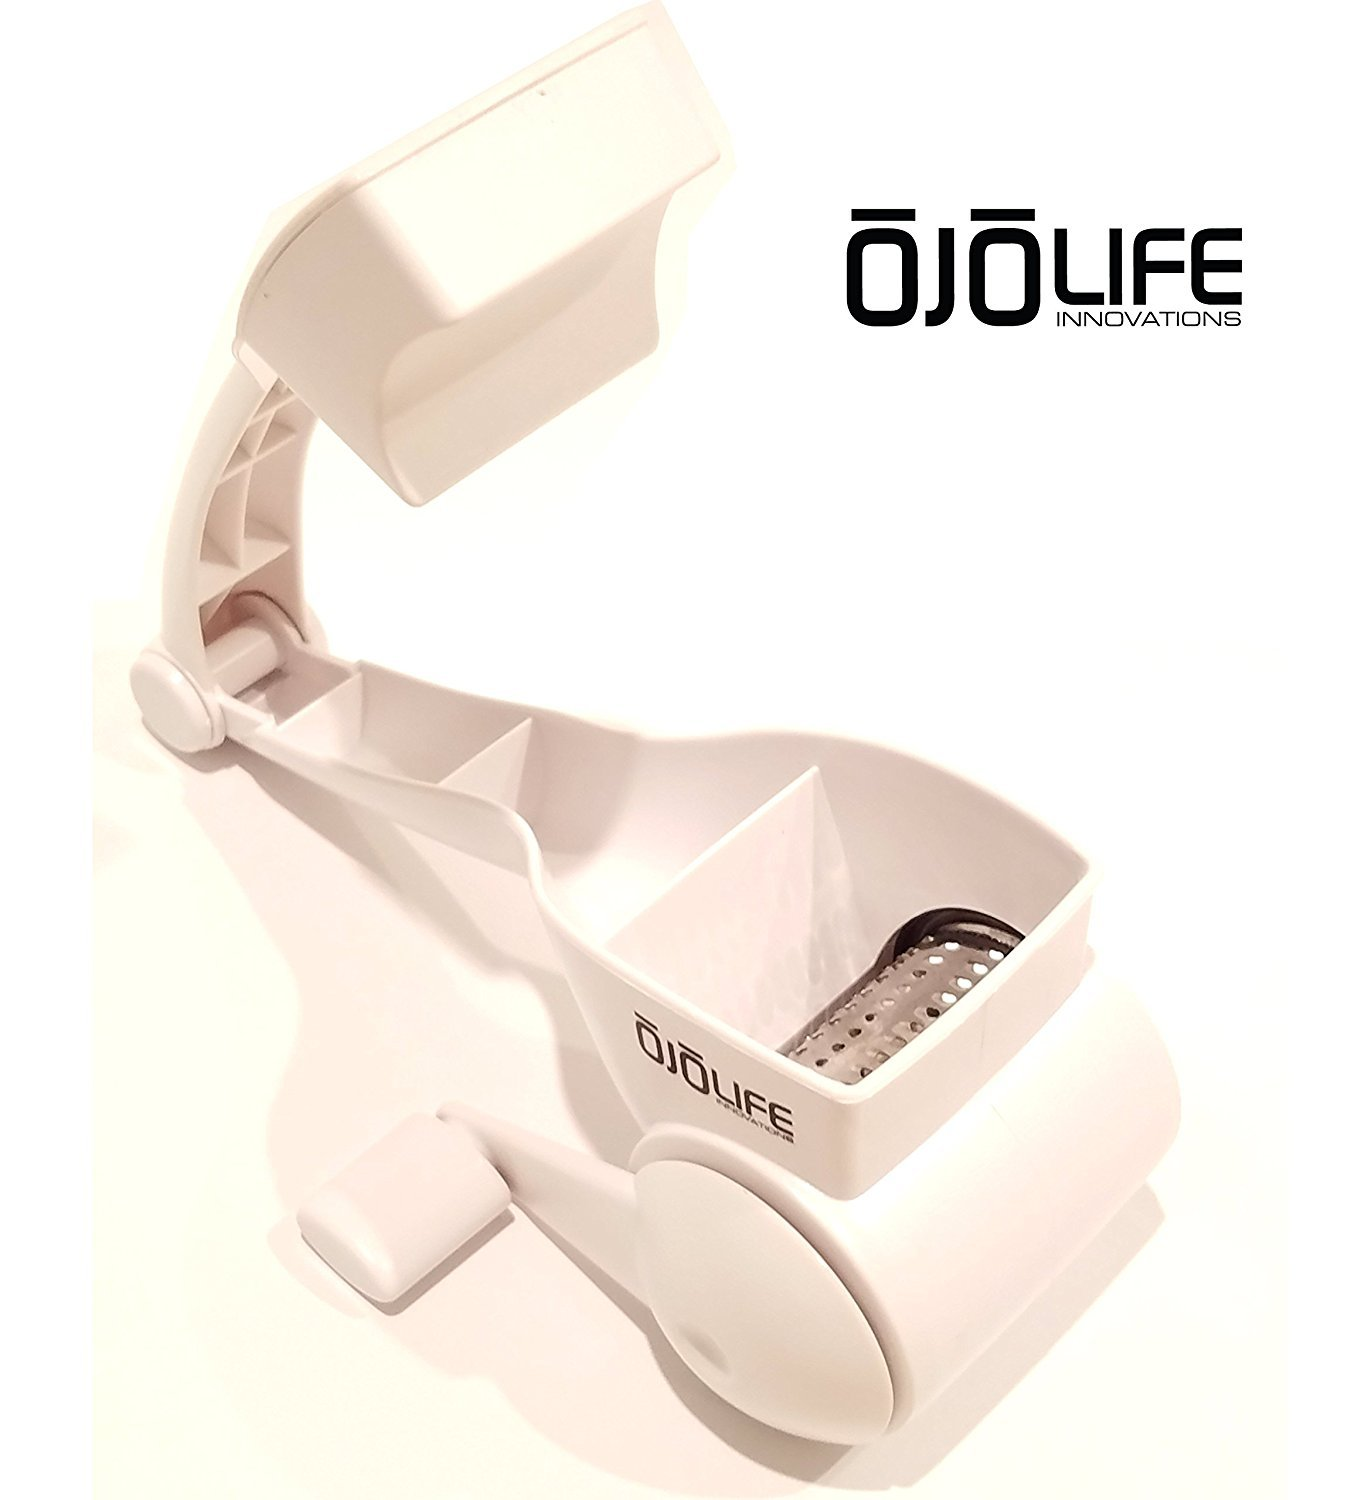 Premium Grade Restaurant Quality Razor Sharp Stainless Steel Blades With Complementary E-Cookbook by OjoLife Innovations Professional Duty Rotary Cheese Grater Shredder Multi Use